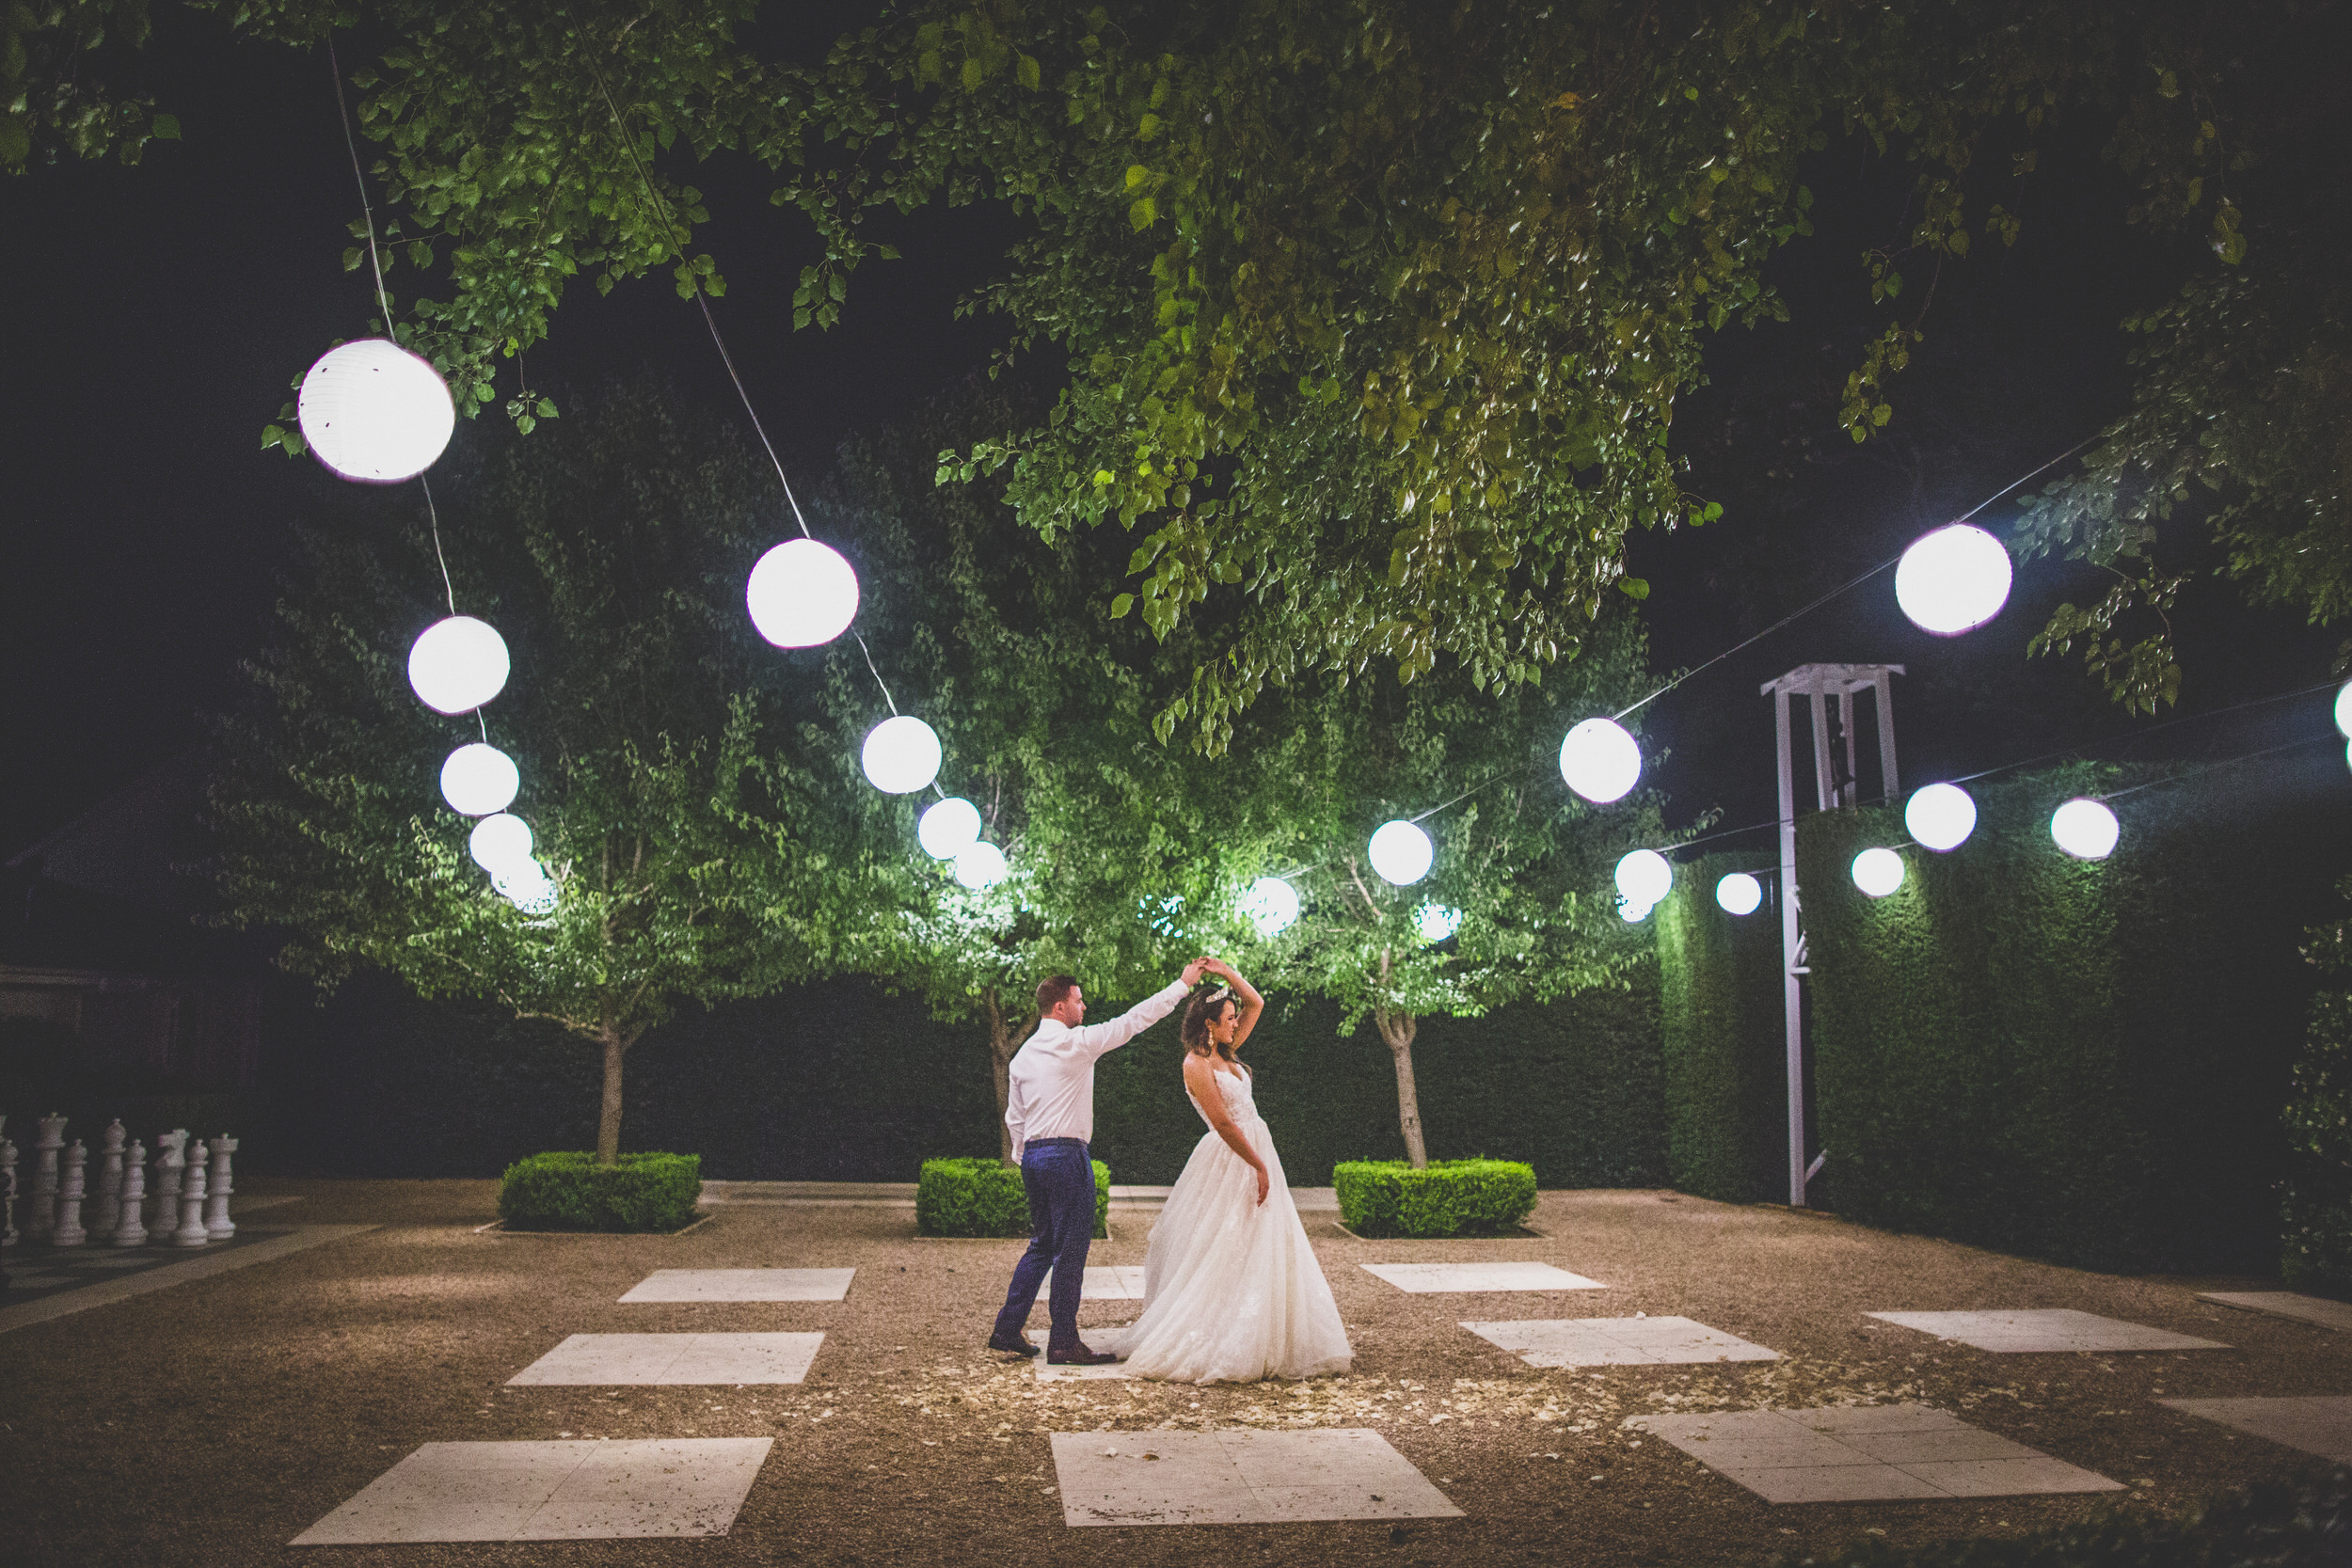 Dancing under the courtyard lanterns in Berry, NSW